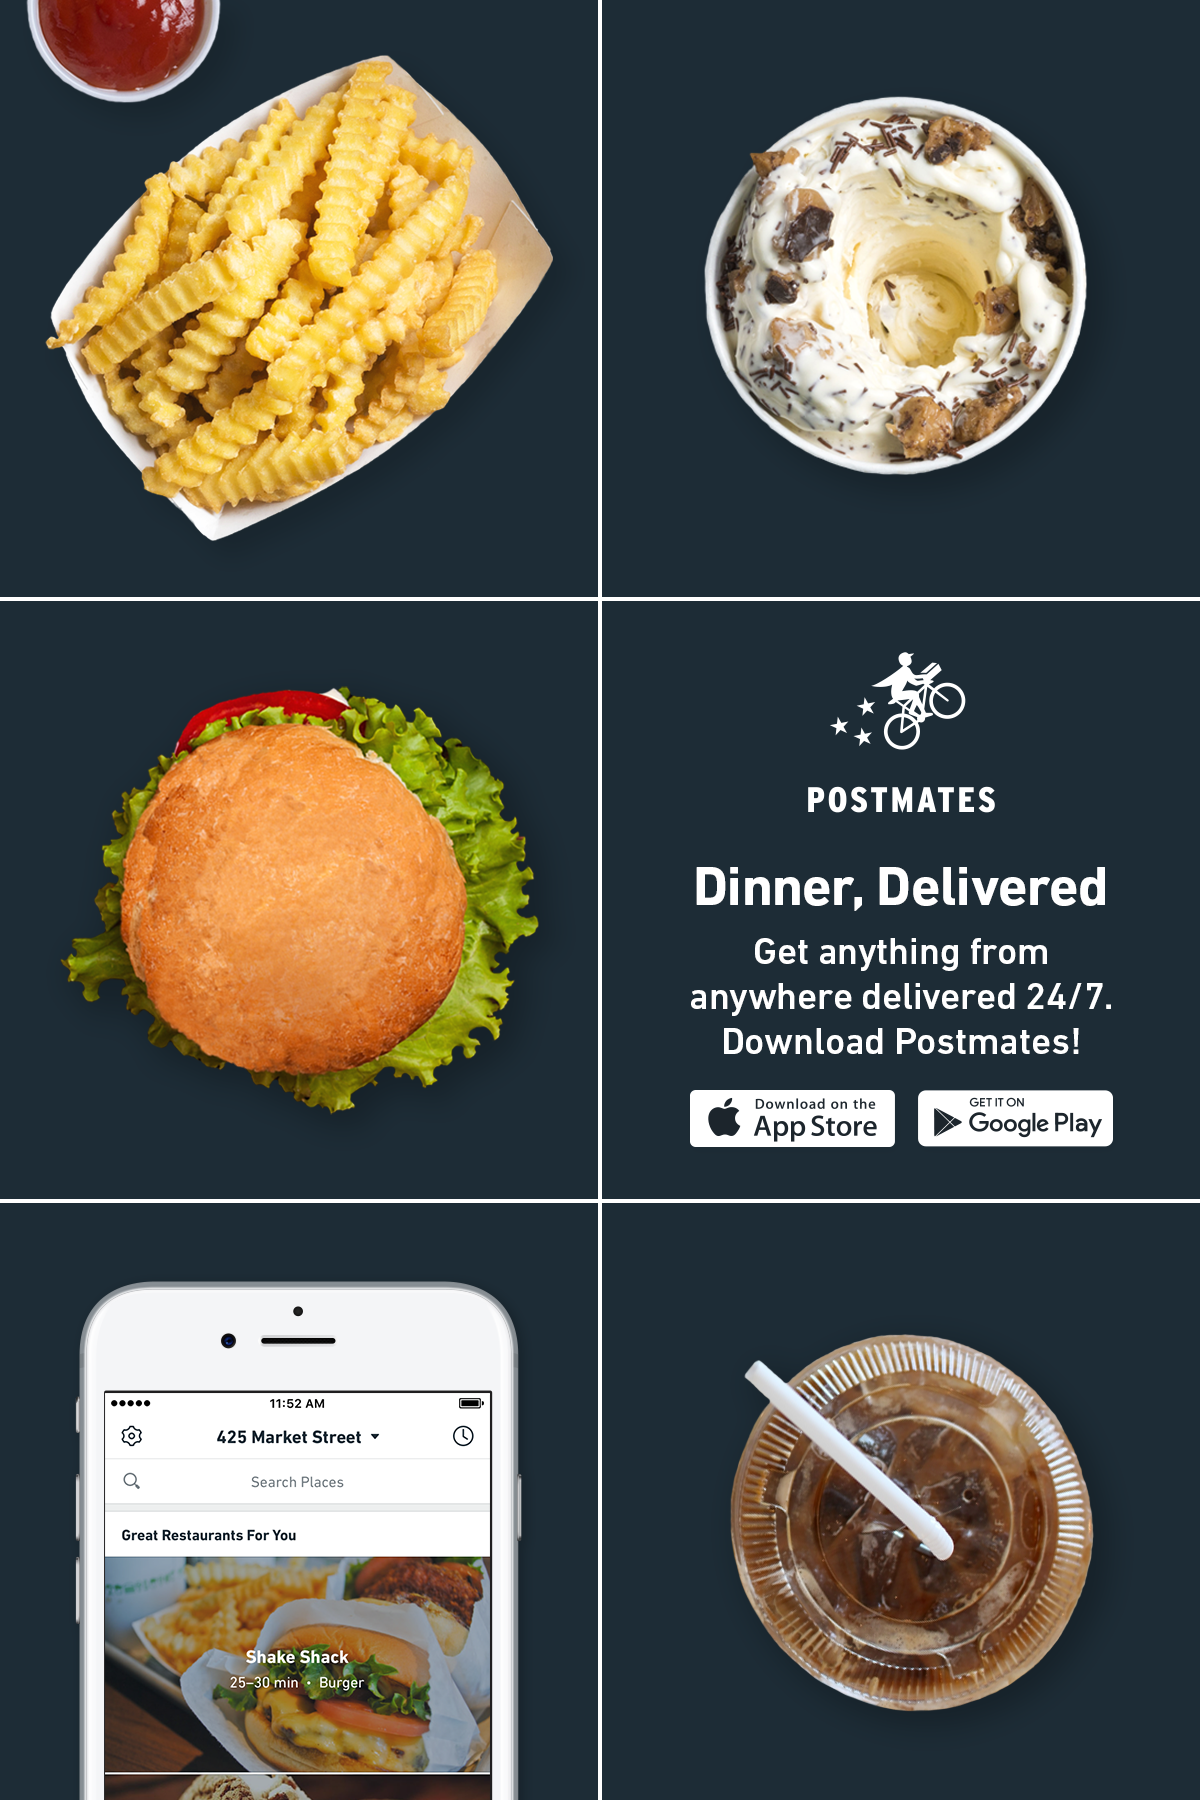 Pin by Postmates on Anything Delivered Shake shack